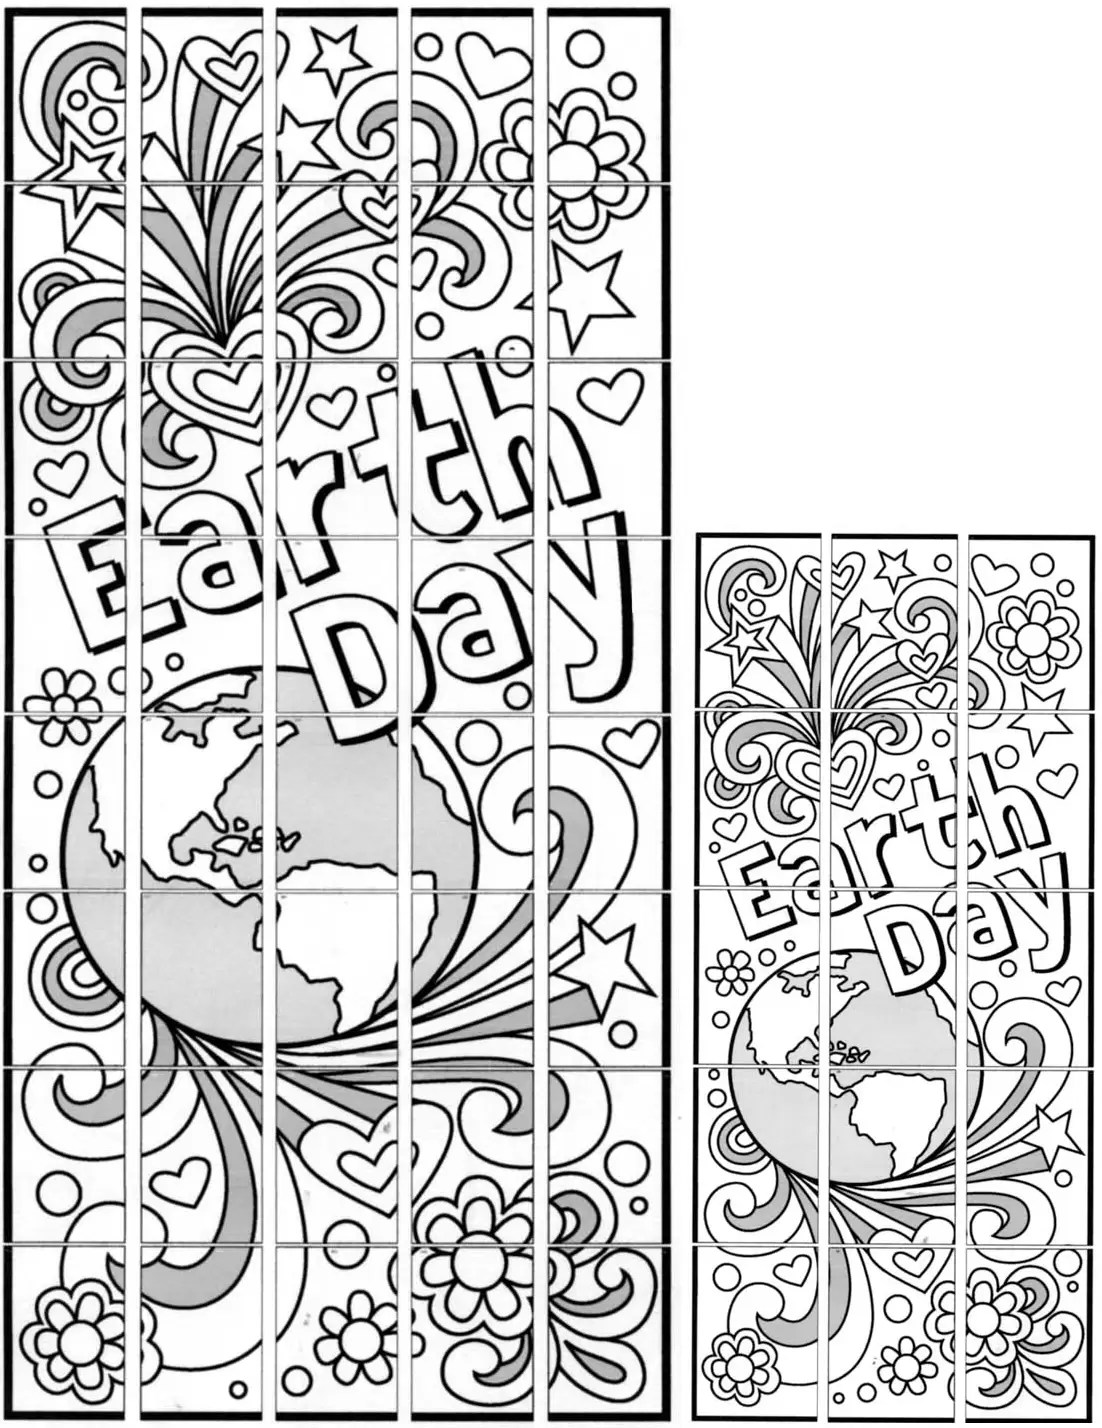 Doodle Earth Day Murals Art Projects For Kids